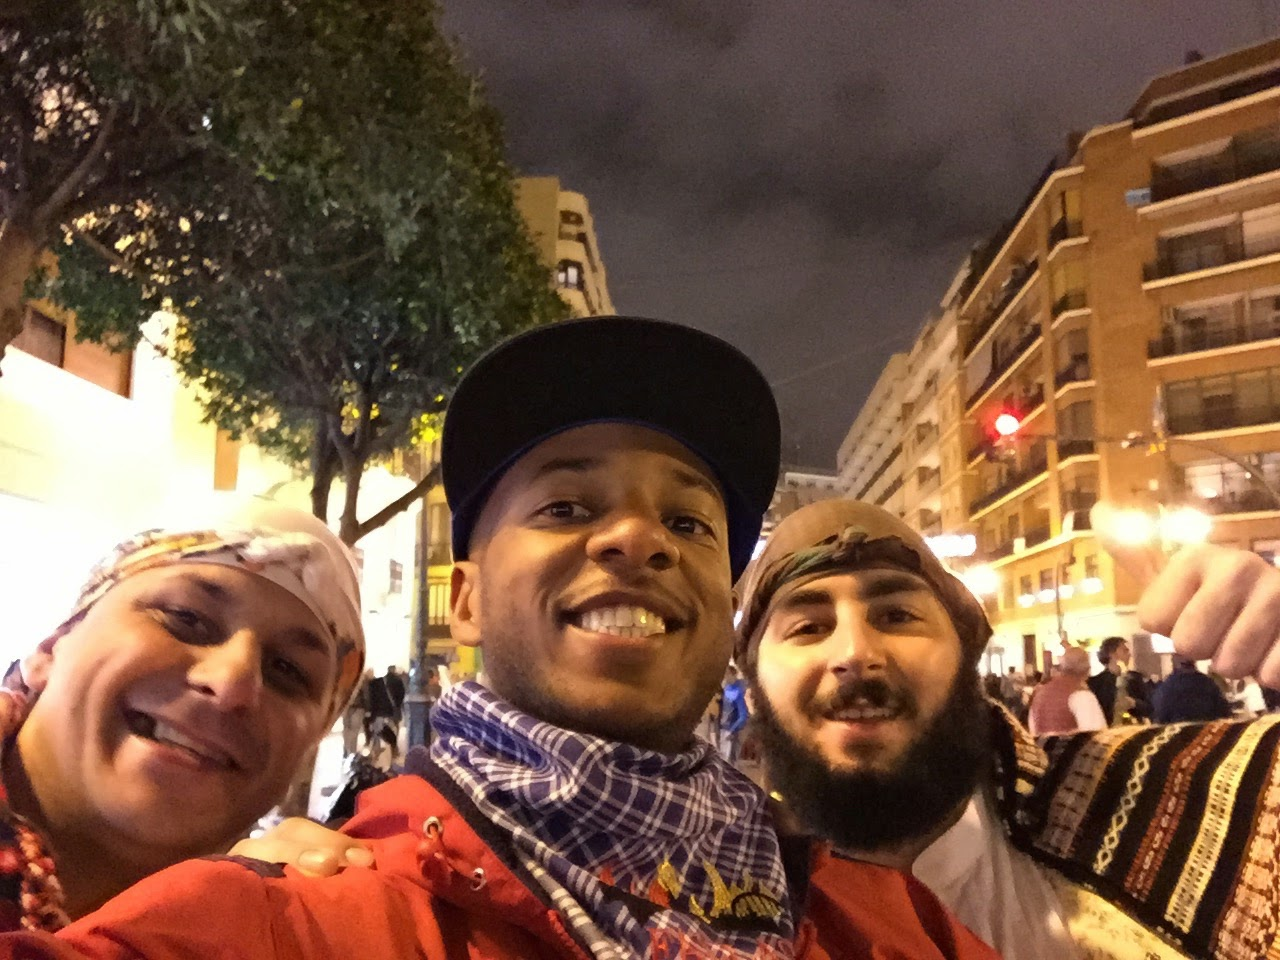 Two Valencianos from the parade wanted me to take a pic with them